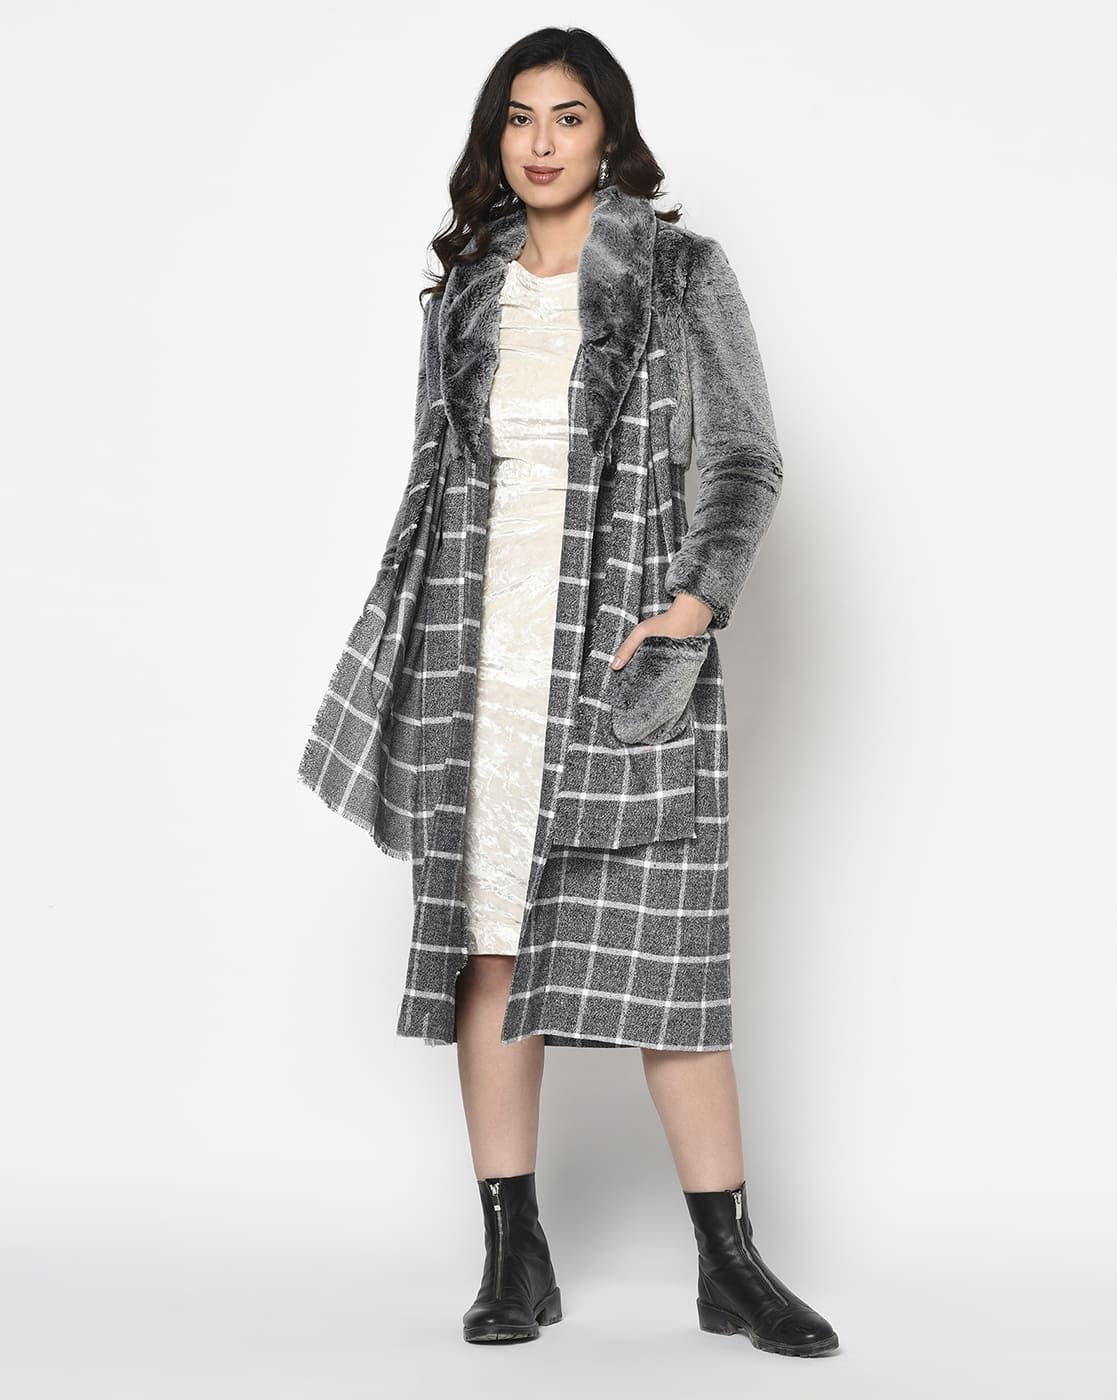 Grey Fur and Checks Overcoat